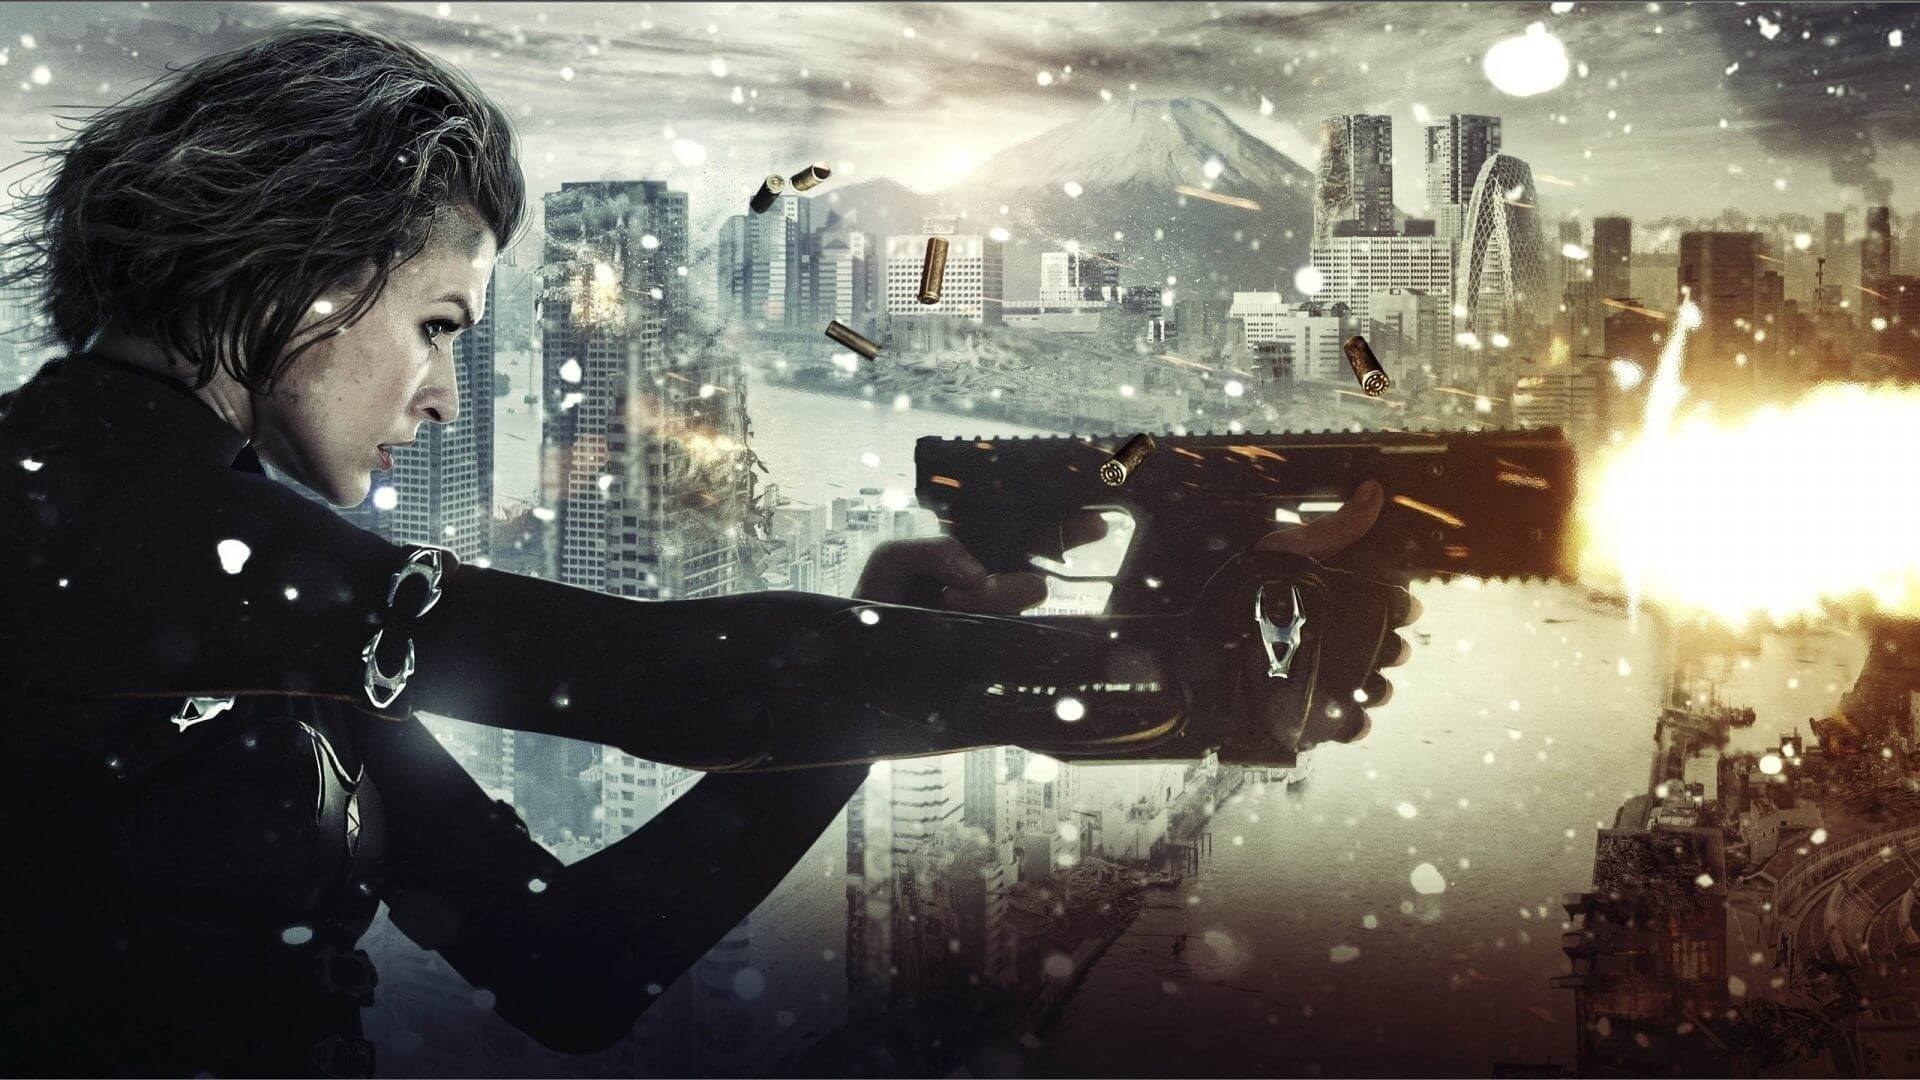 Story and Cast Released for Resident Evil: The Final Chapter